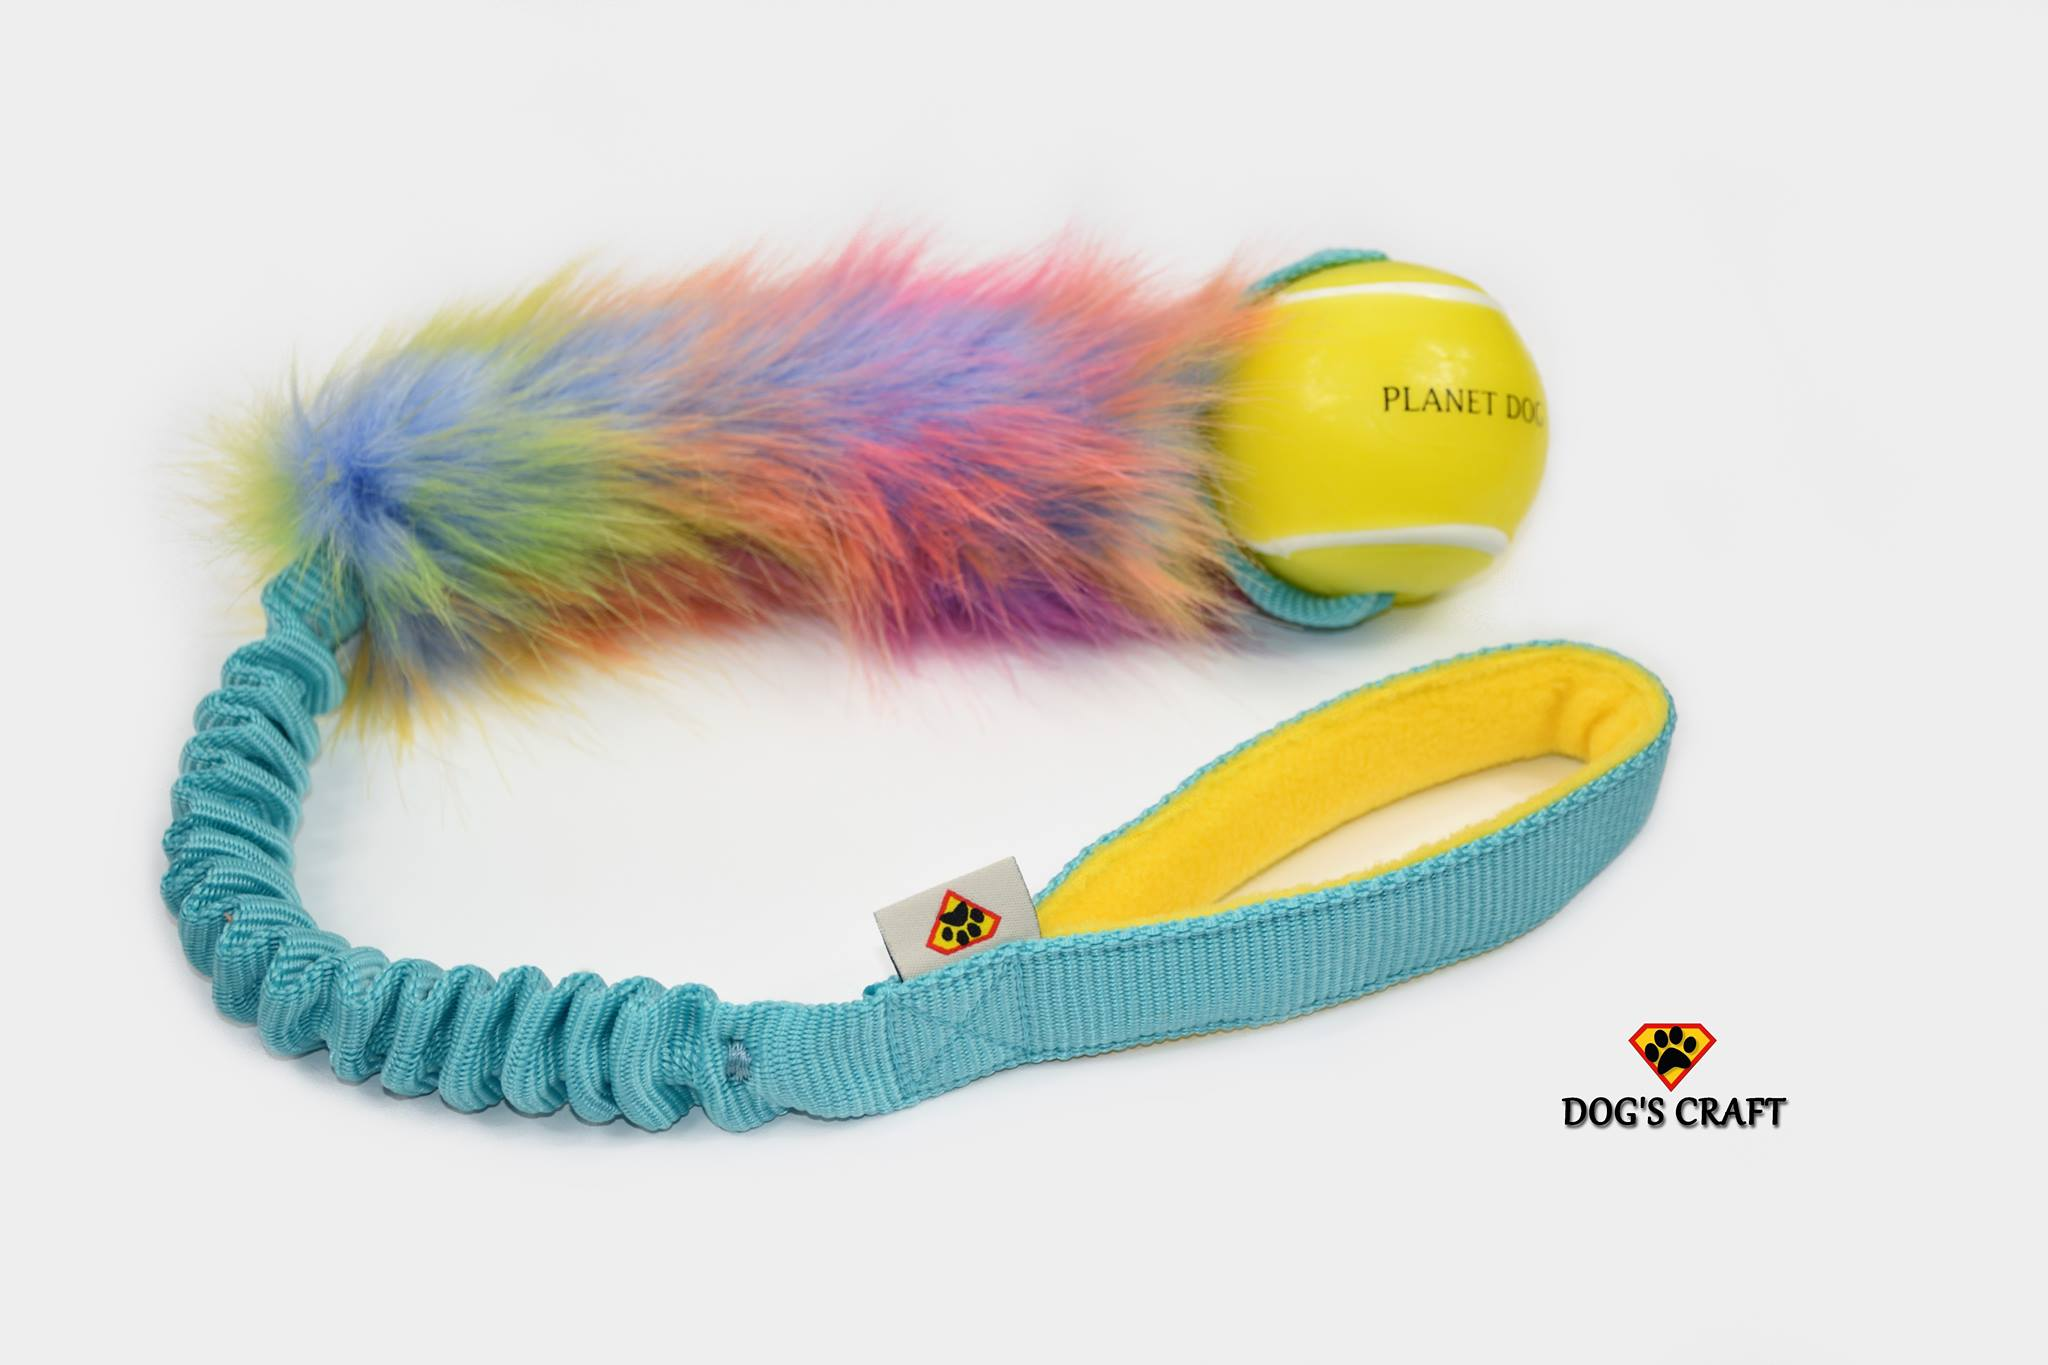 Firework faux fur w/- Planet Dog tennis ball bungee tug